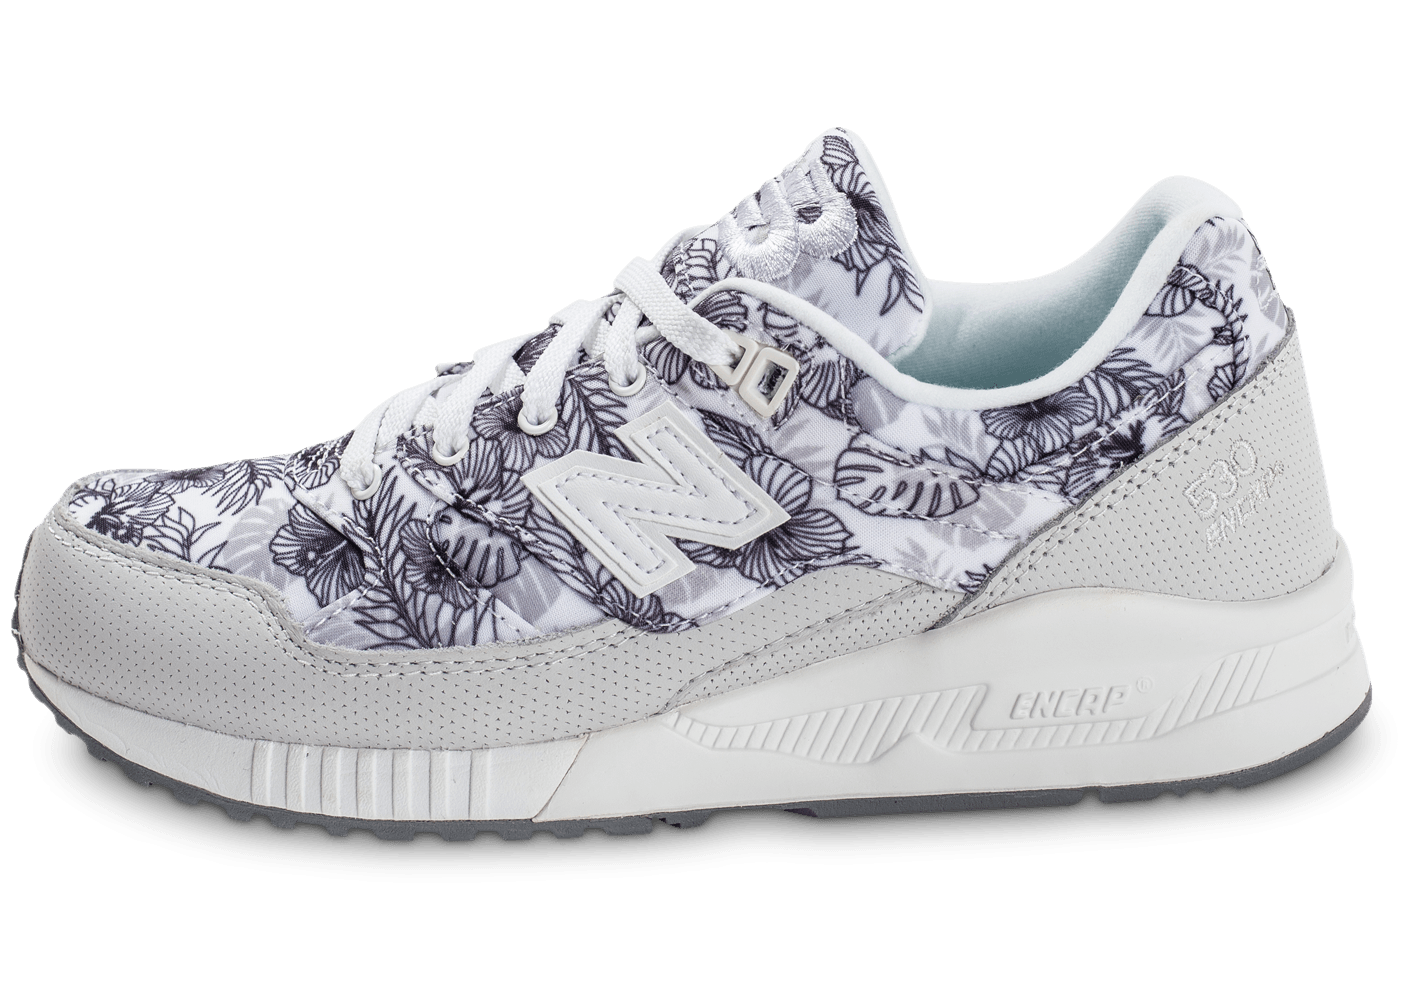 new products 0aa3f dd7c8 10579-chaussures-new-balance-w530-tcb-floral-print-grise-et-blanche-vue -exterieure.png